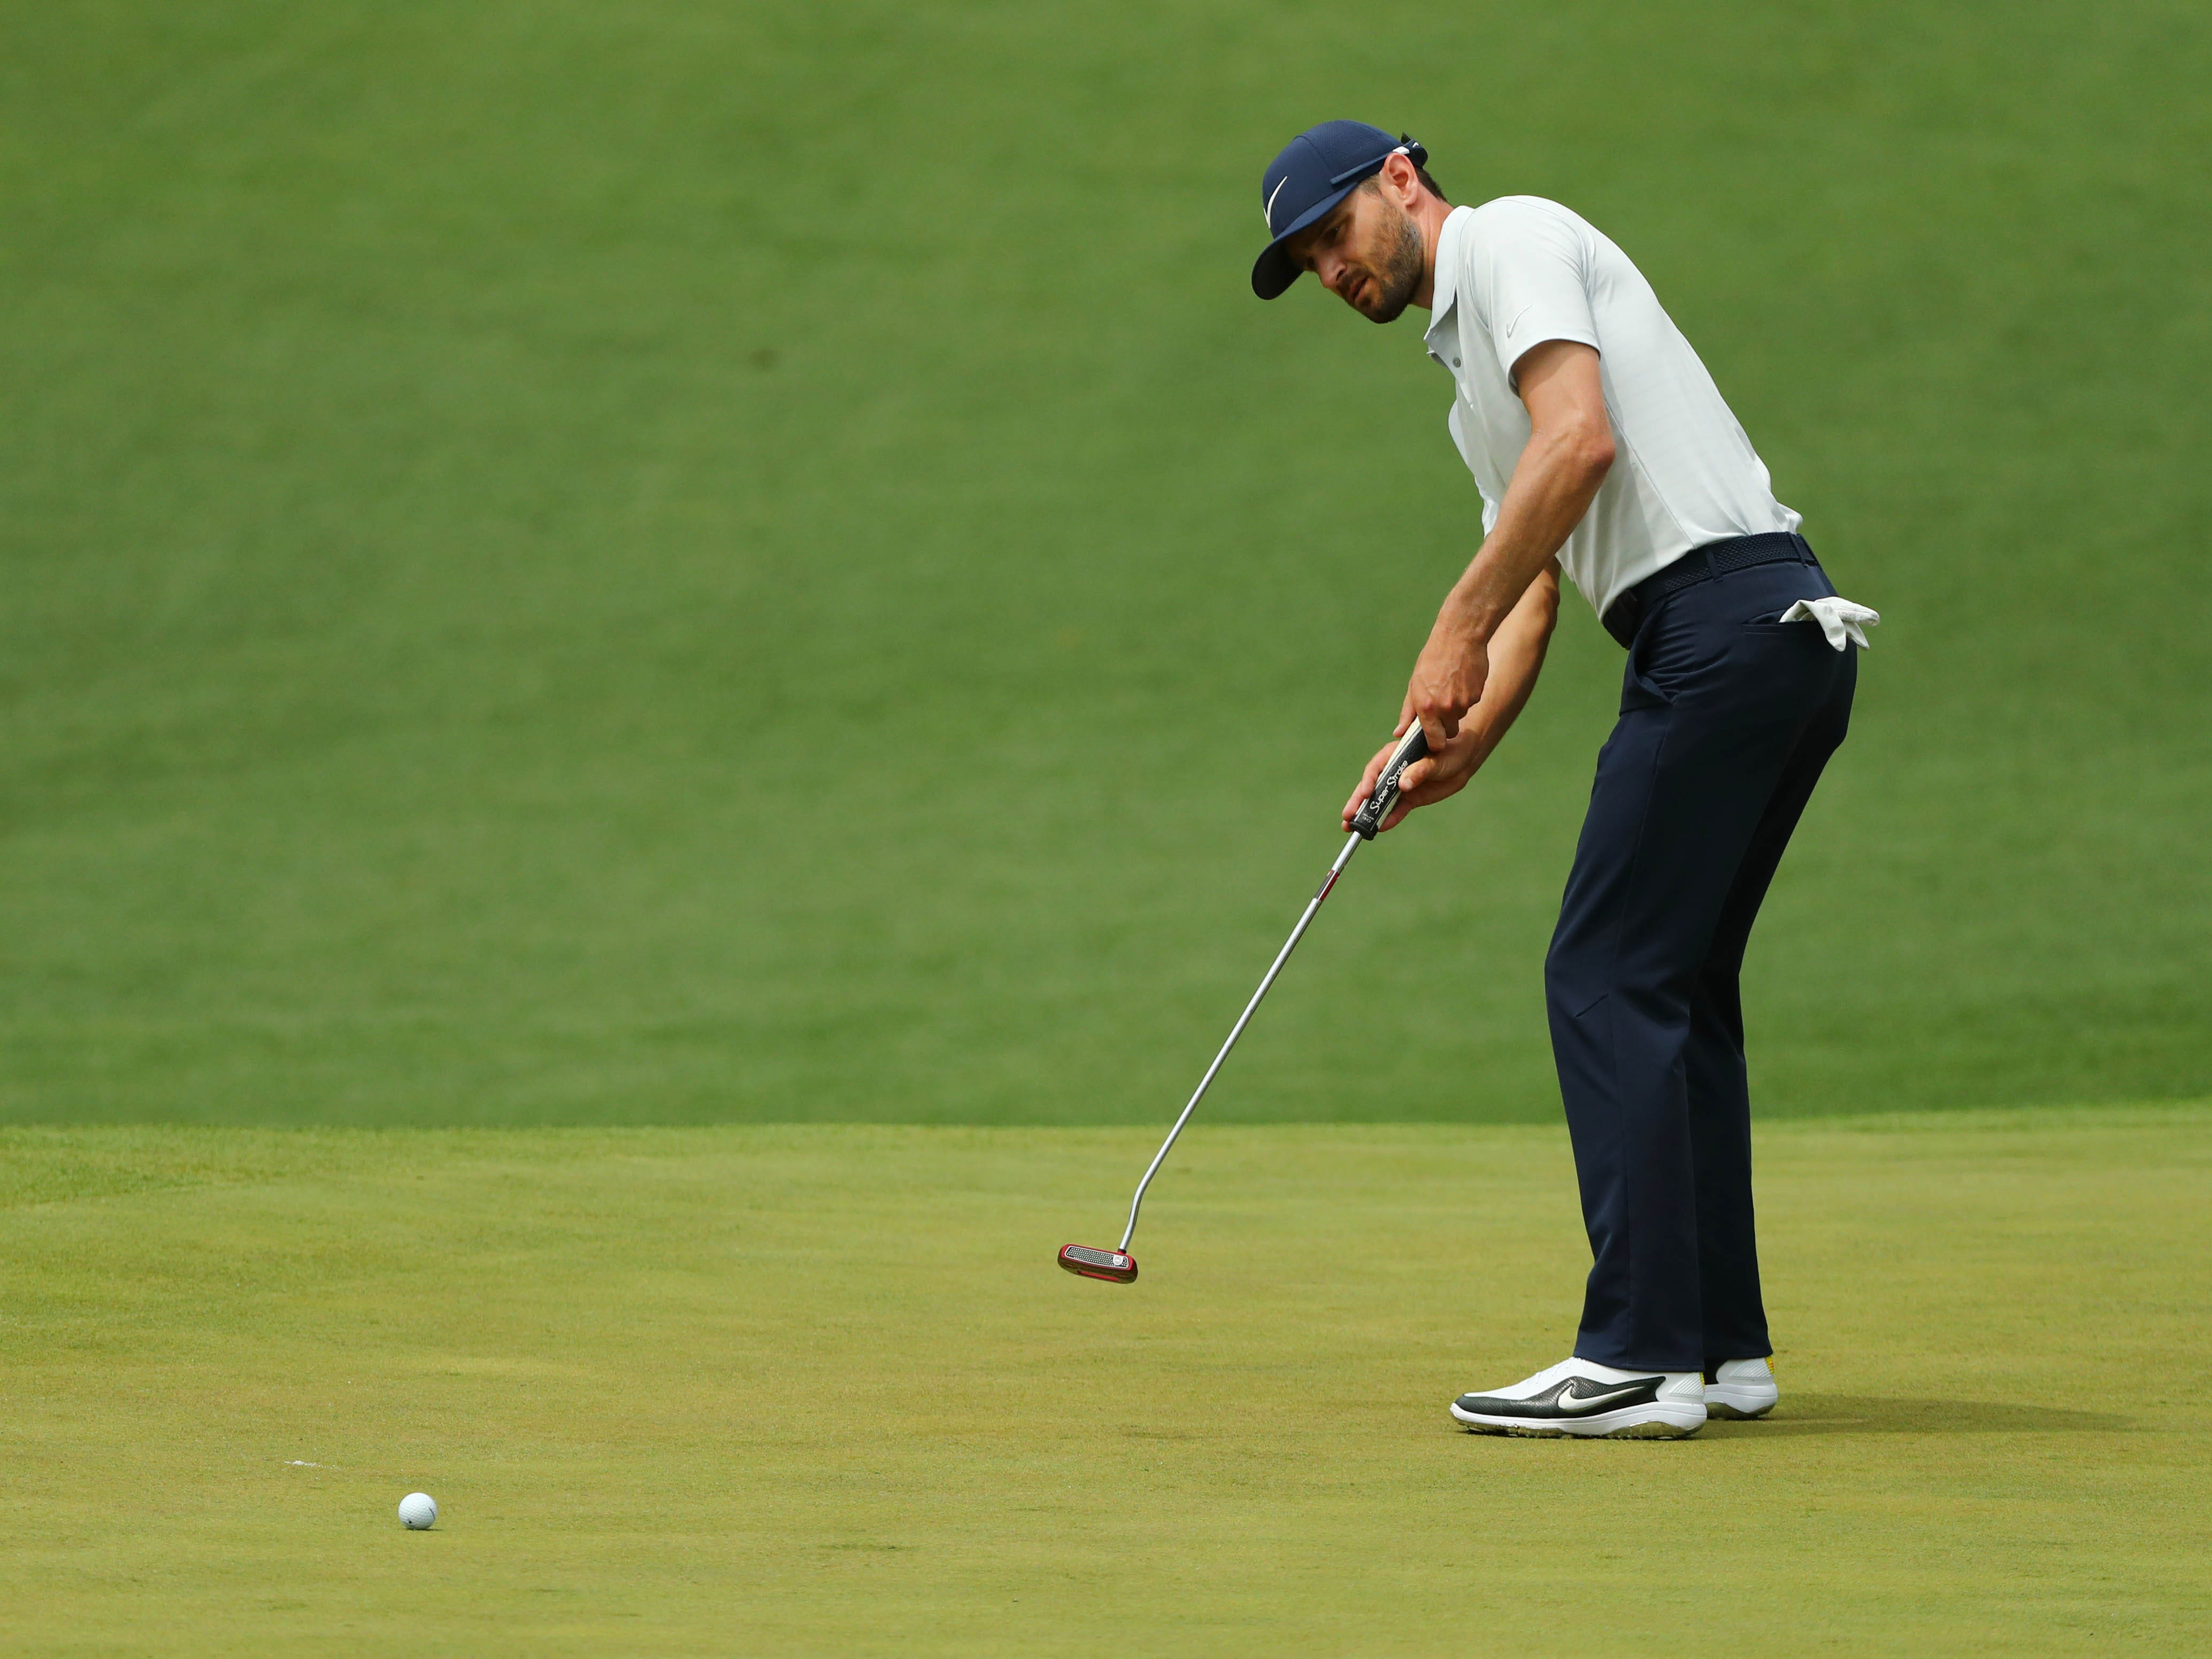 Apr 12, 2019; Augusta, GA, USA; Kyle Stanley putts on the 2nd green during the second round of The Masters golf tournament at Augusta National Golf Club. Mandatory Credit: Rob Schumacher-USA TODAY Sports